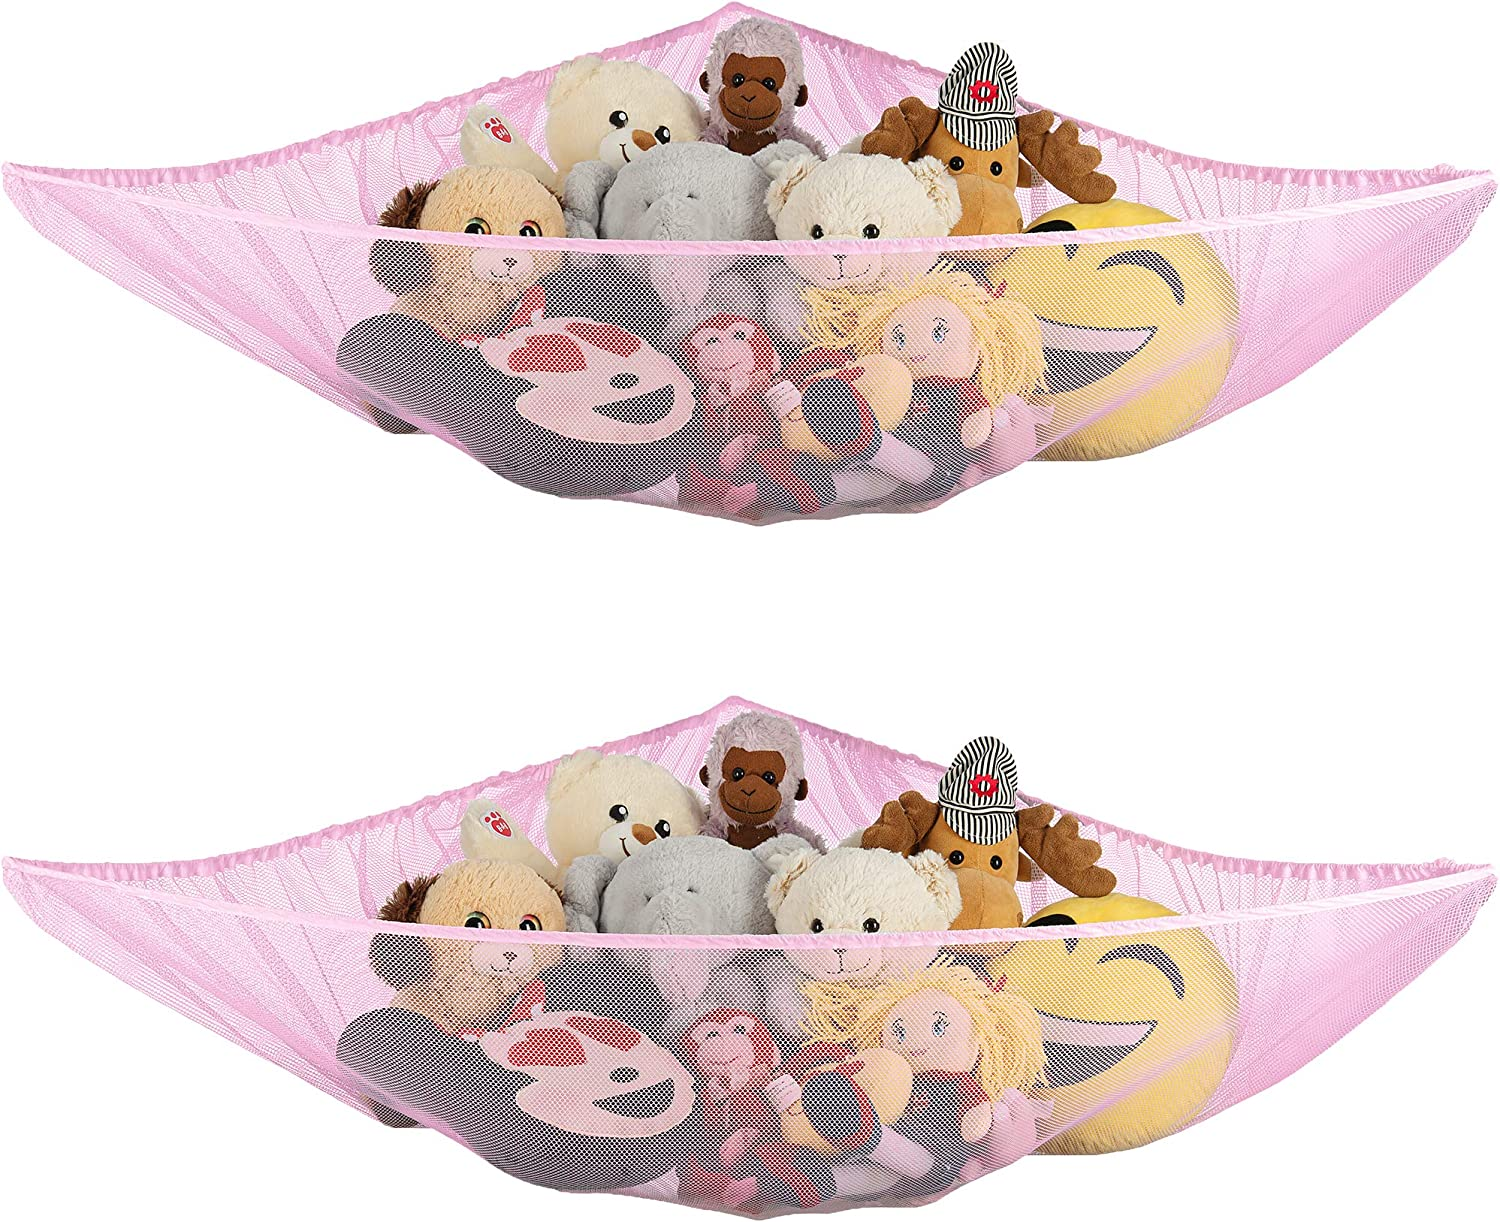 Ziz Home Stuffed Animal Hammock, 2 Pack, Nursery and Playroom Jumbo Toy Storage Net Organizer for Plush Toys, Kids Bedroom Décor, Rip-Resistant Stuff Animals Holder with Hanging Hardware (Pink)